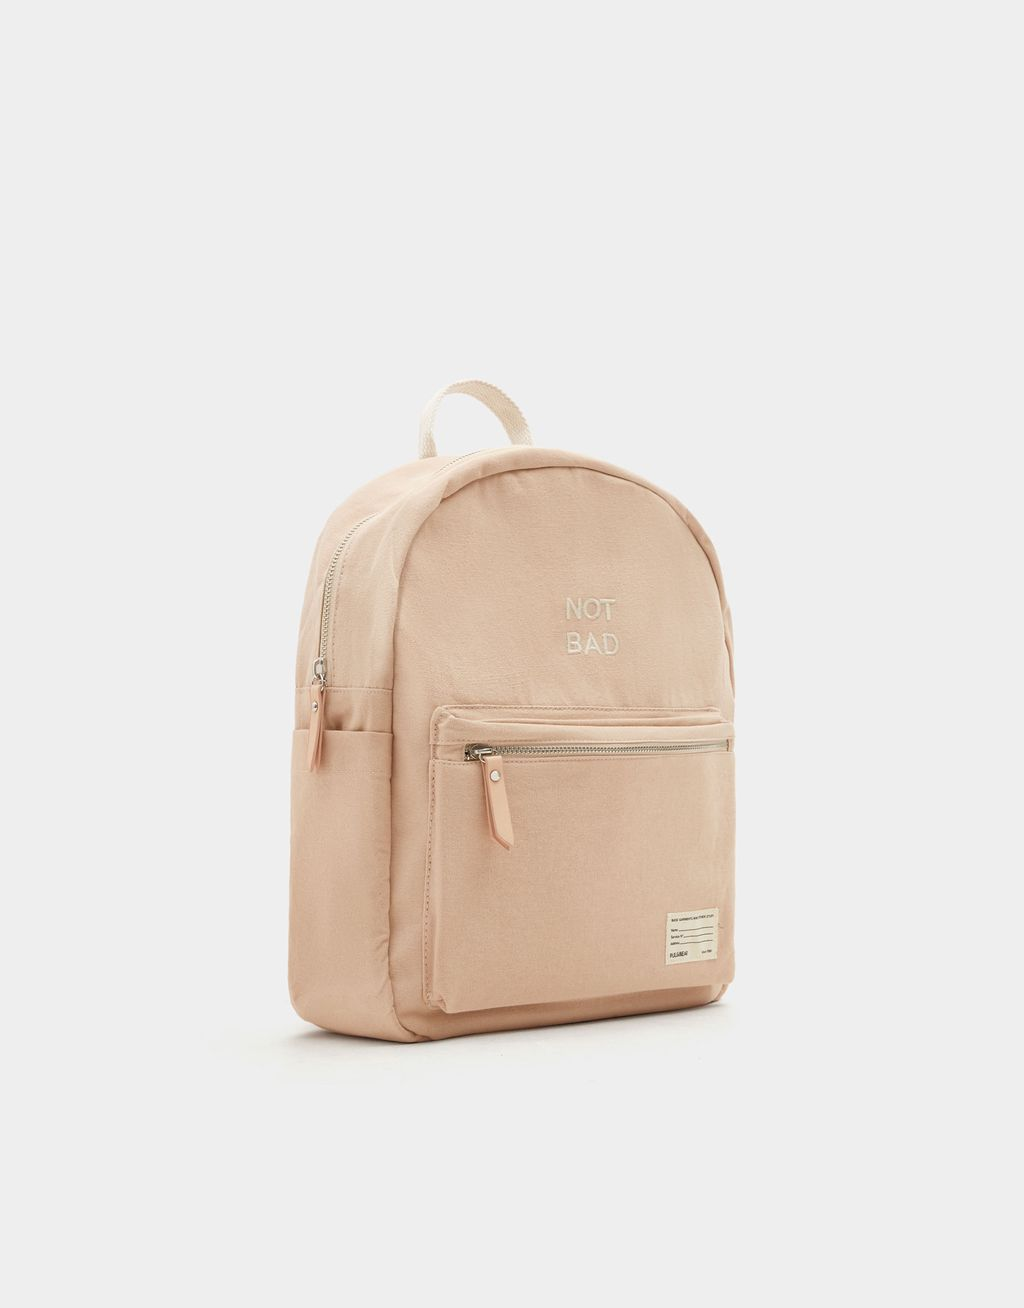 8d8874c4f6 Nude Fabric Mini Backpack With Slogan - Pull   Bear